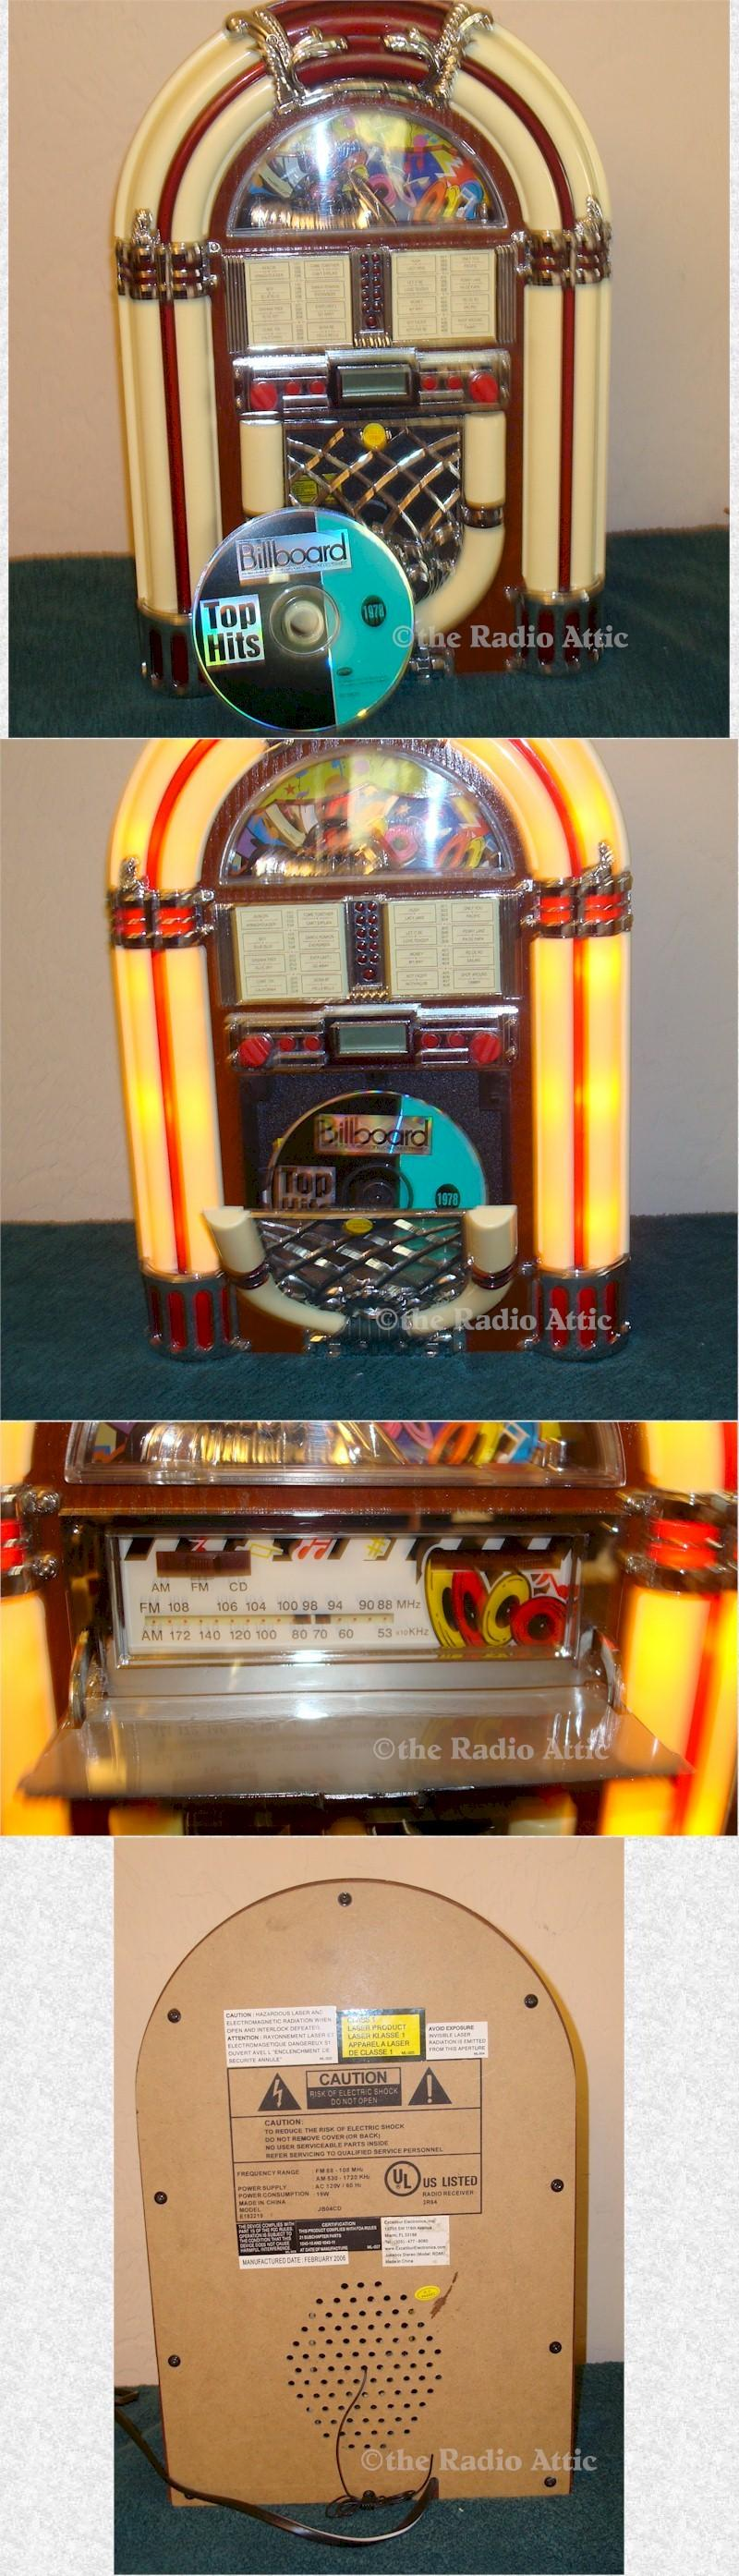 "Excaliber RD66 AM/FM/CD ""Jukebox"" (2006)"